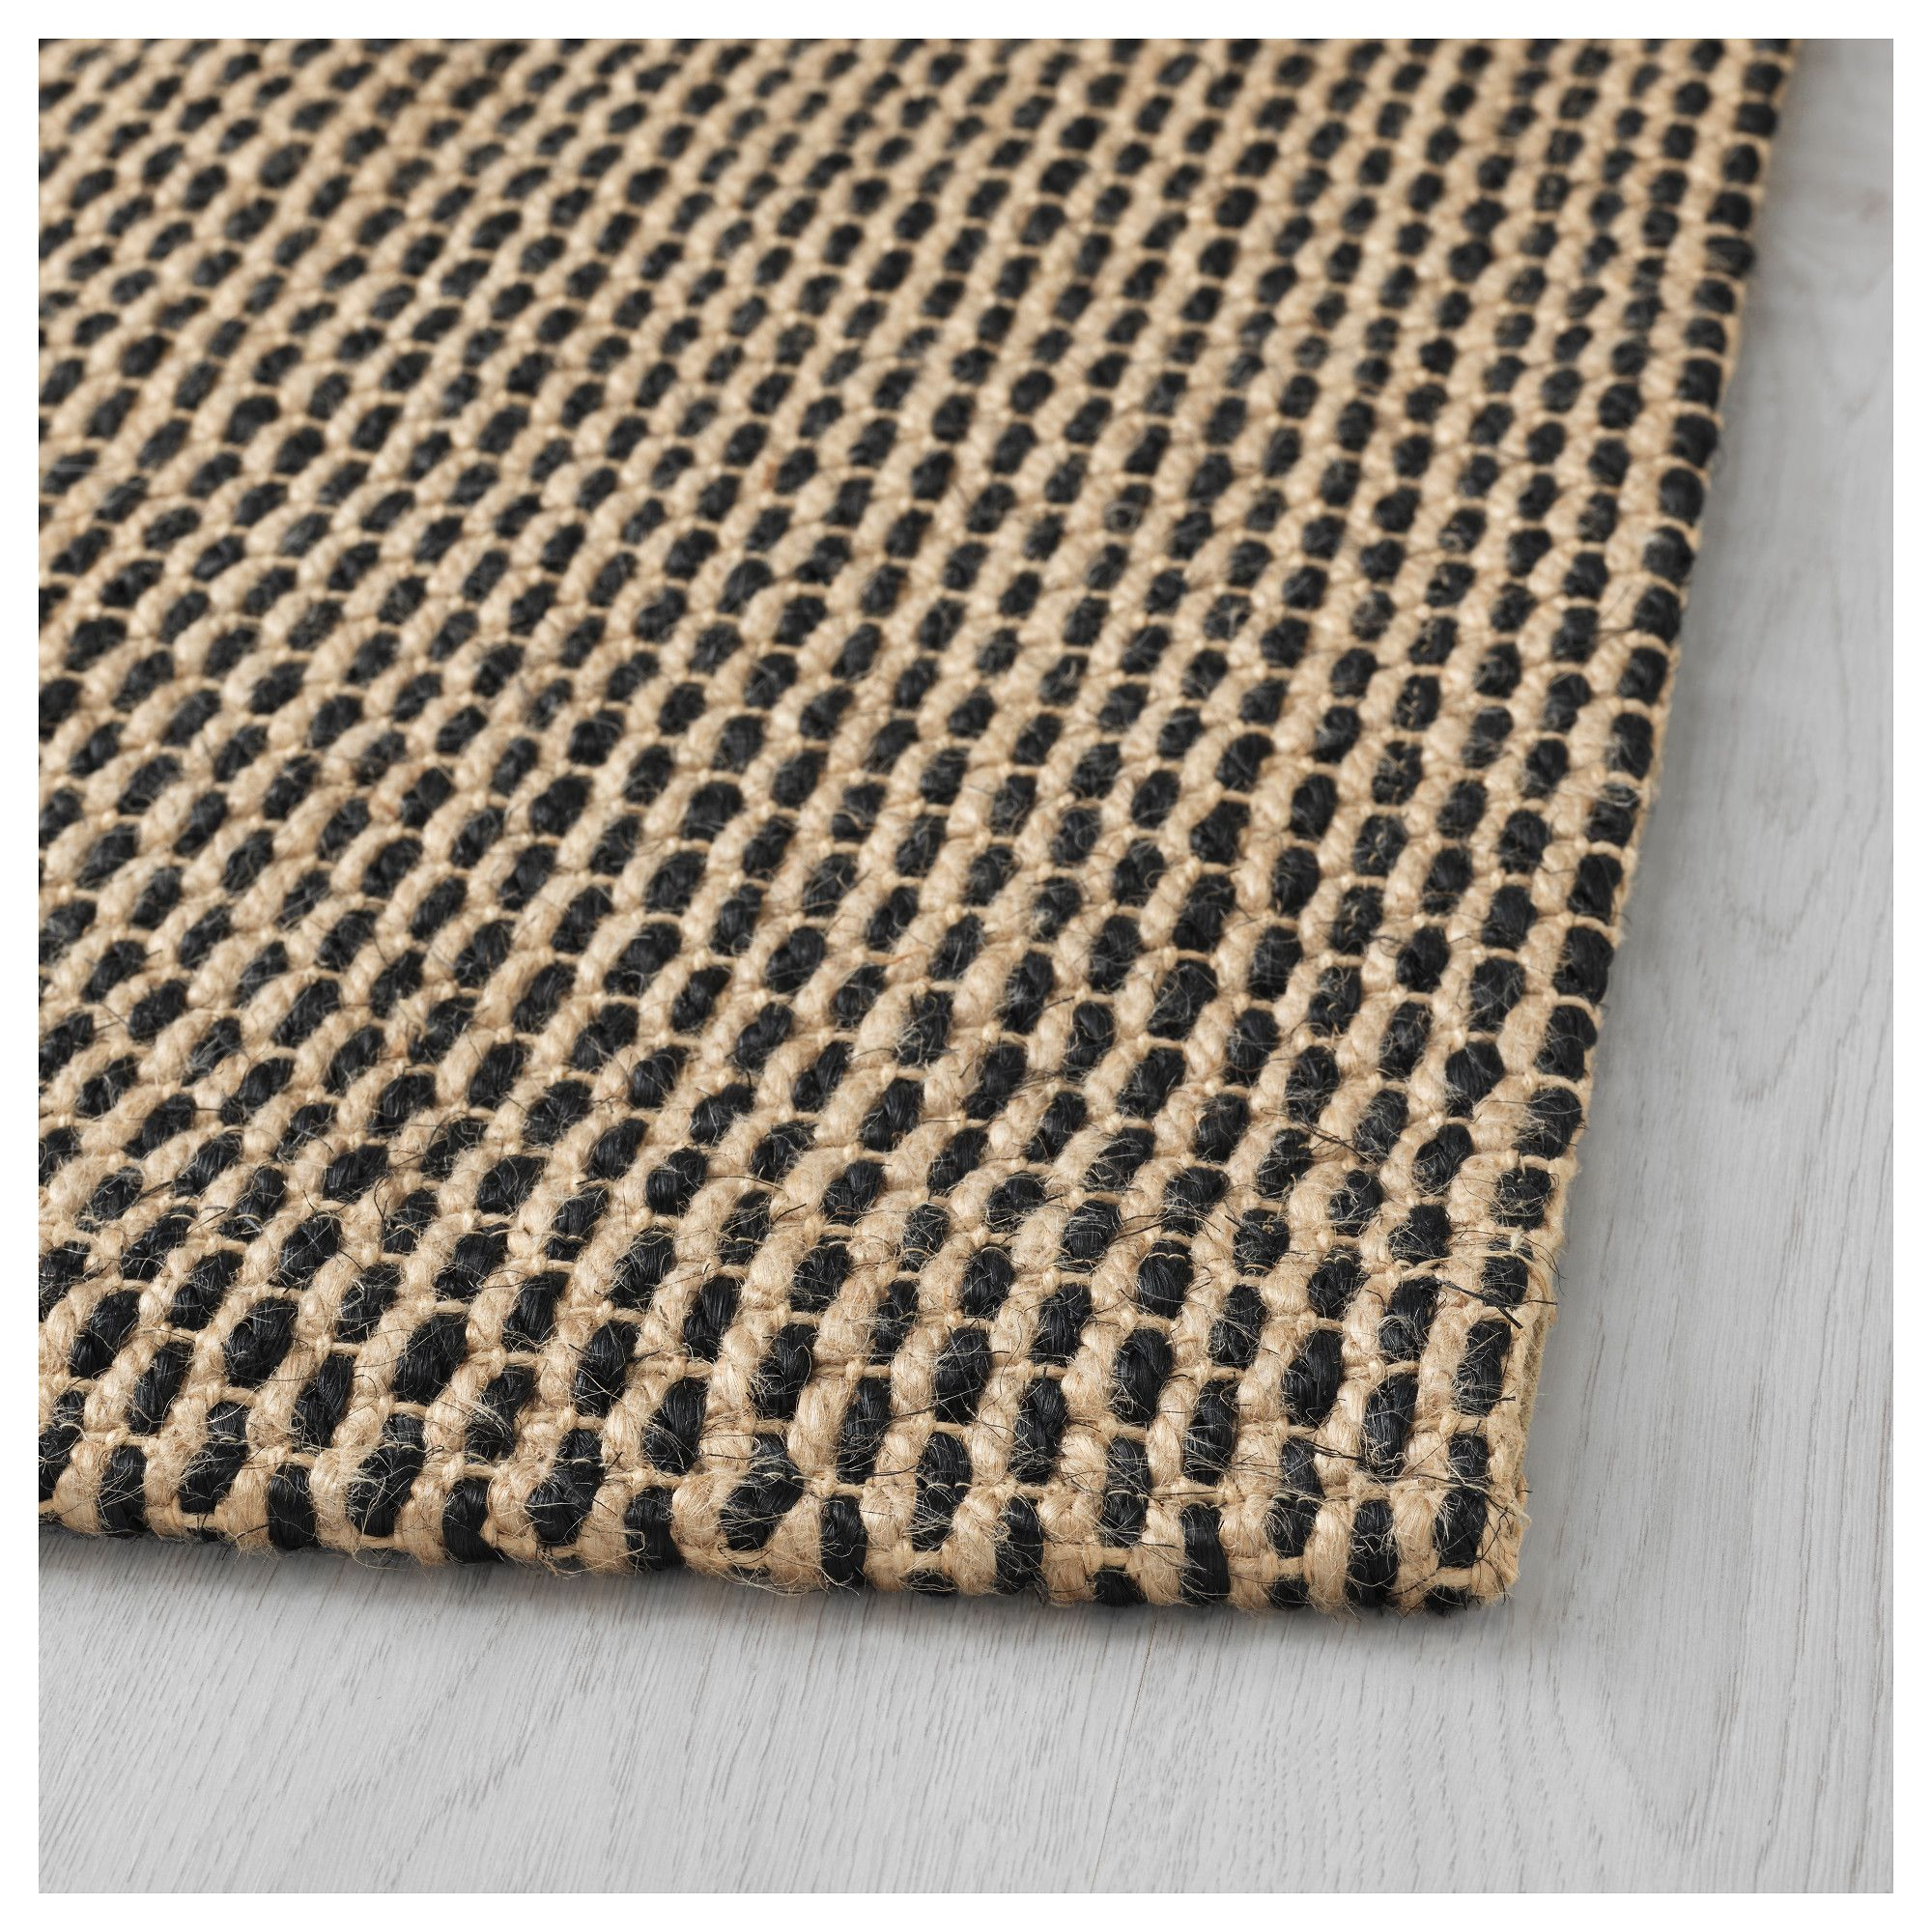 Ikea Sattrup Rug Flatwoven Natural 180x224 Cm The Is Hard Wearing And Durable Because It S Made Of Sisal A Fibre Taken From Agave Plant